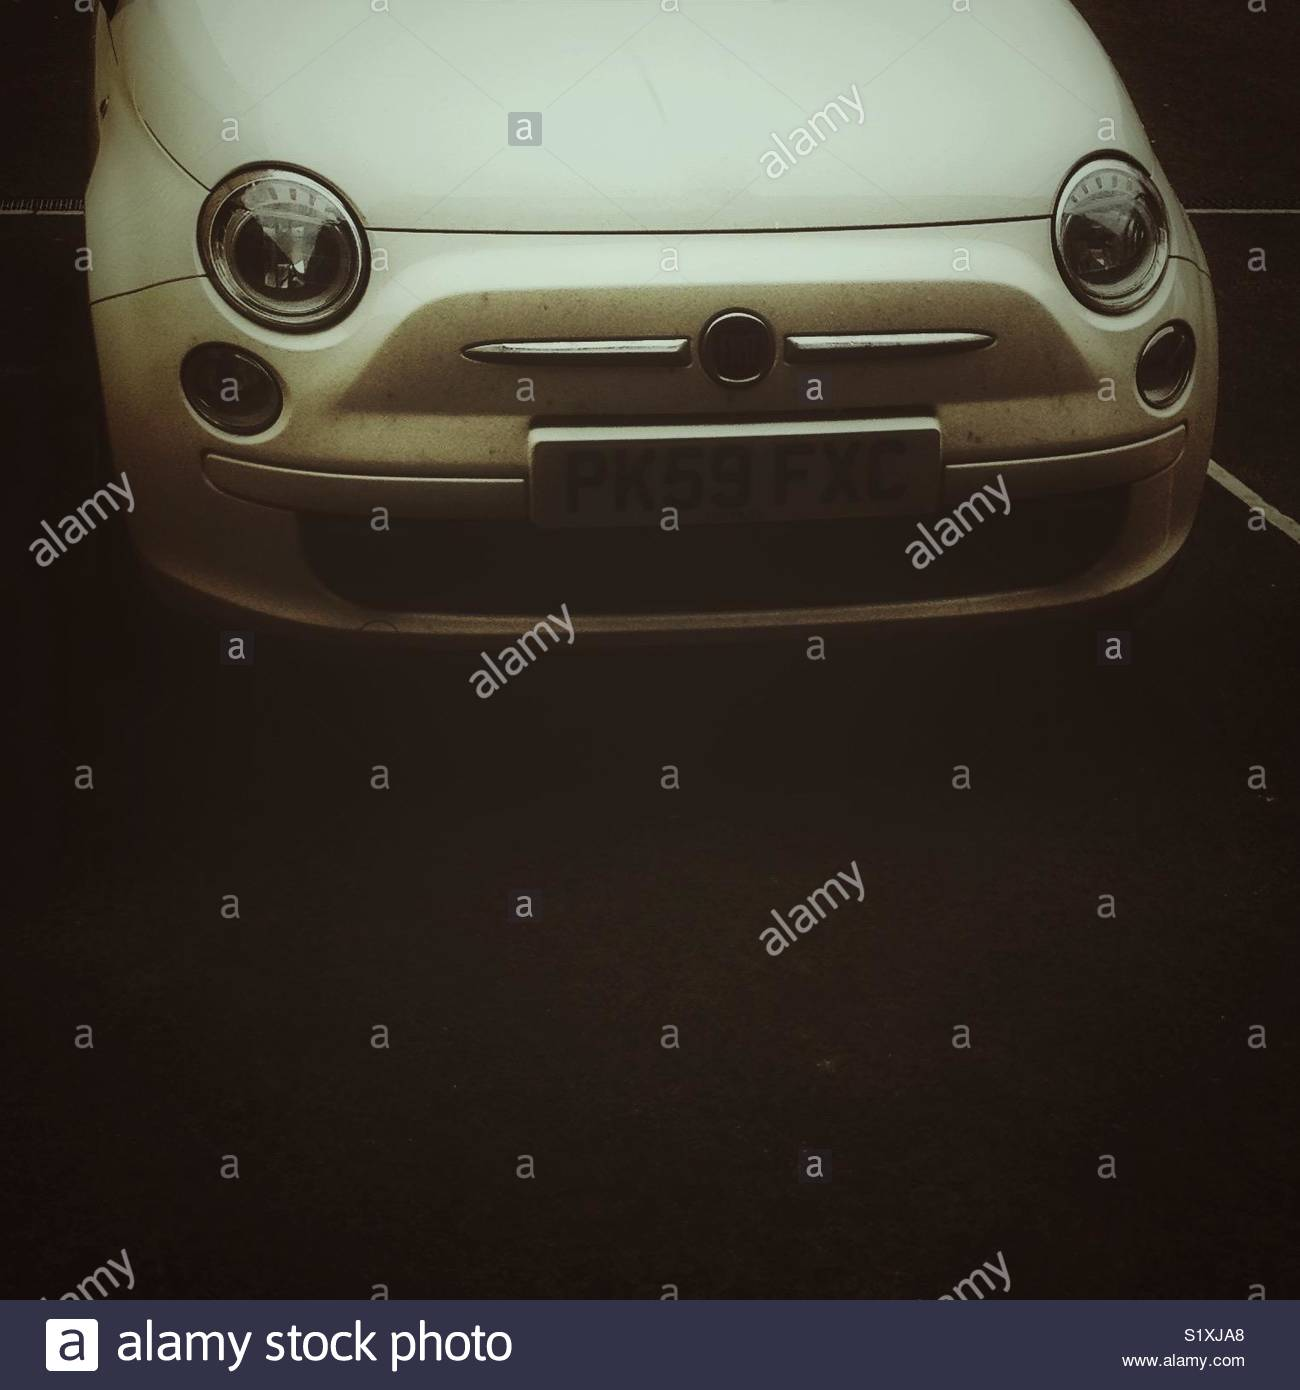 Close up avant de Fiat 500 voiture avec copie espace Photo Stock